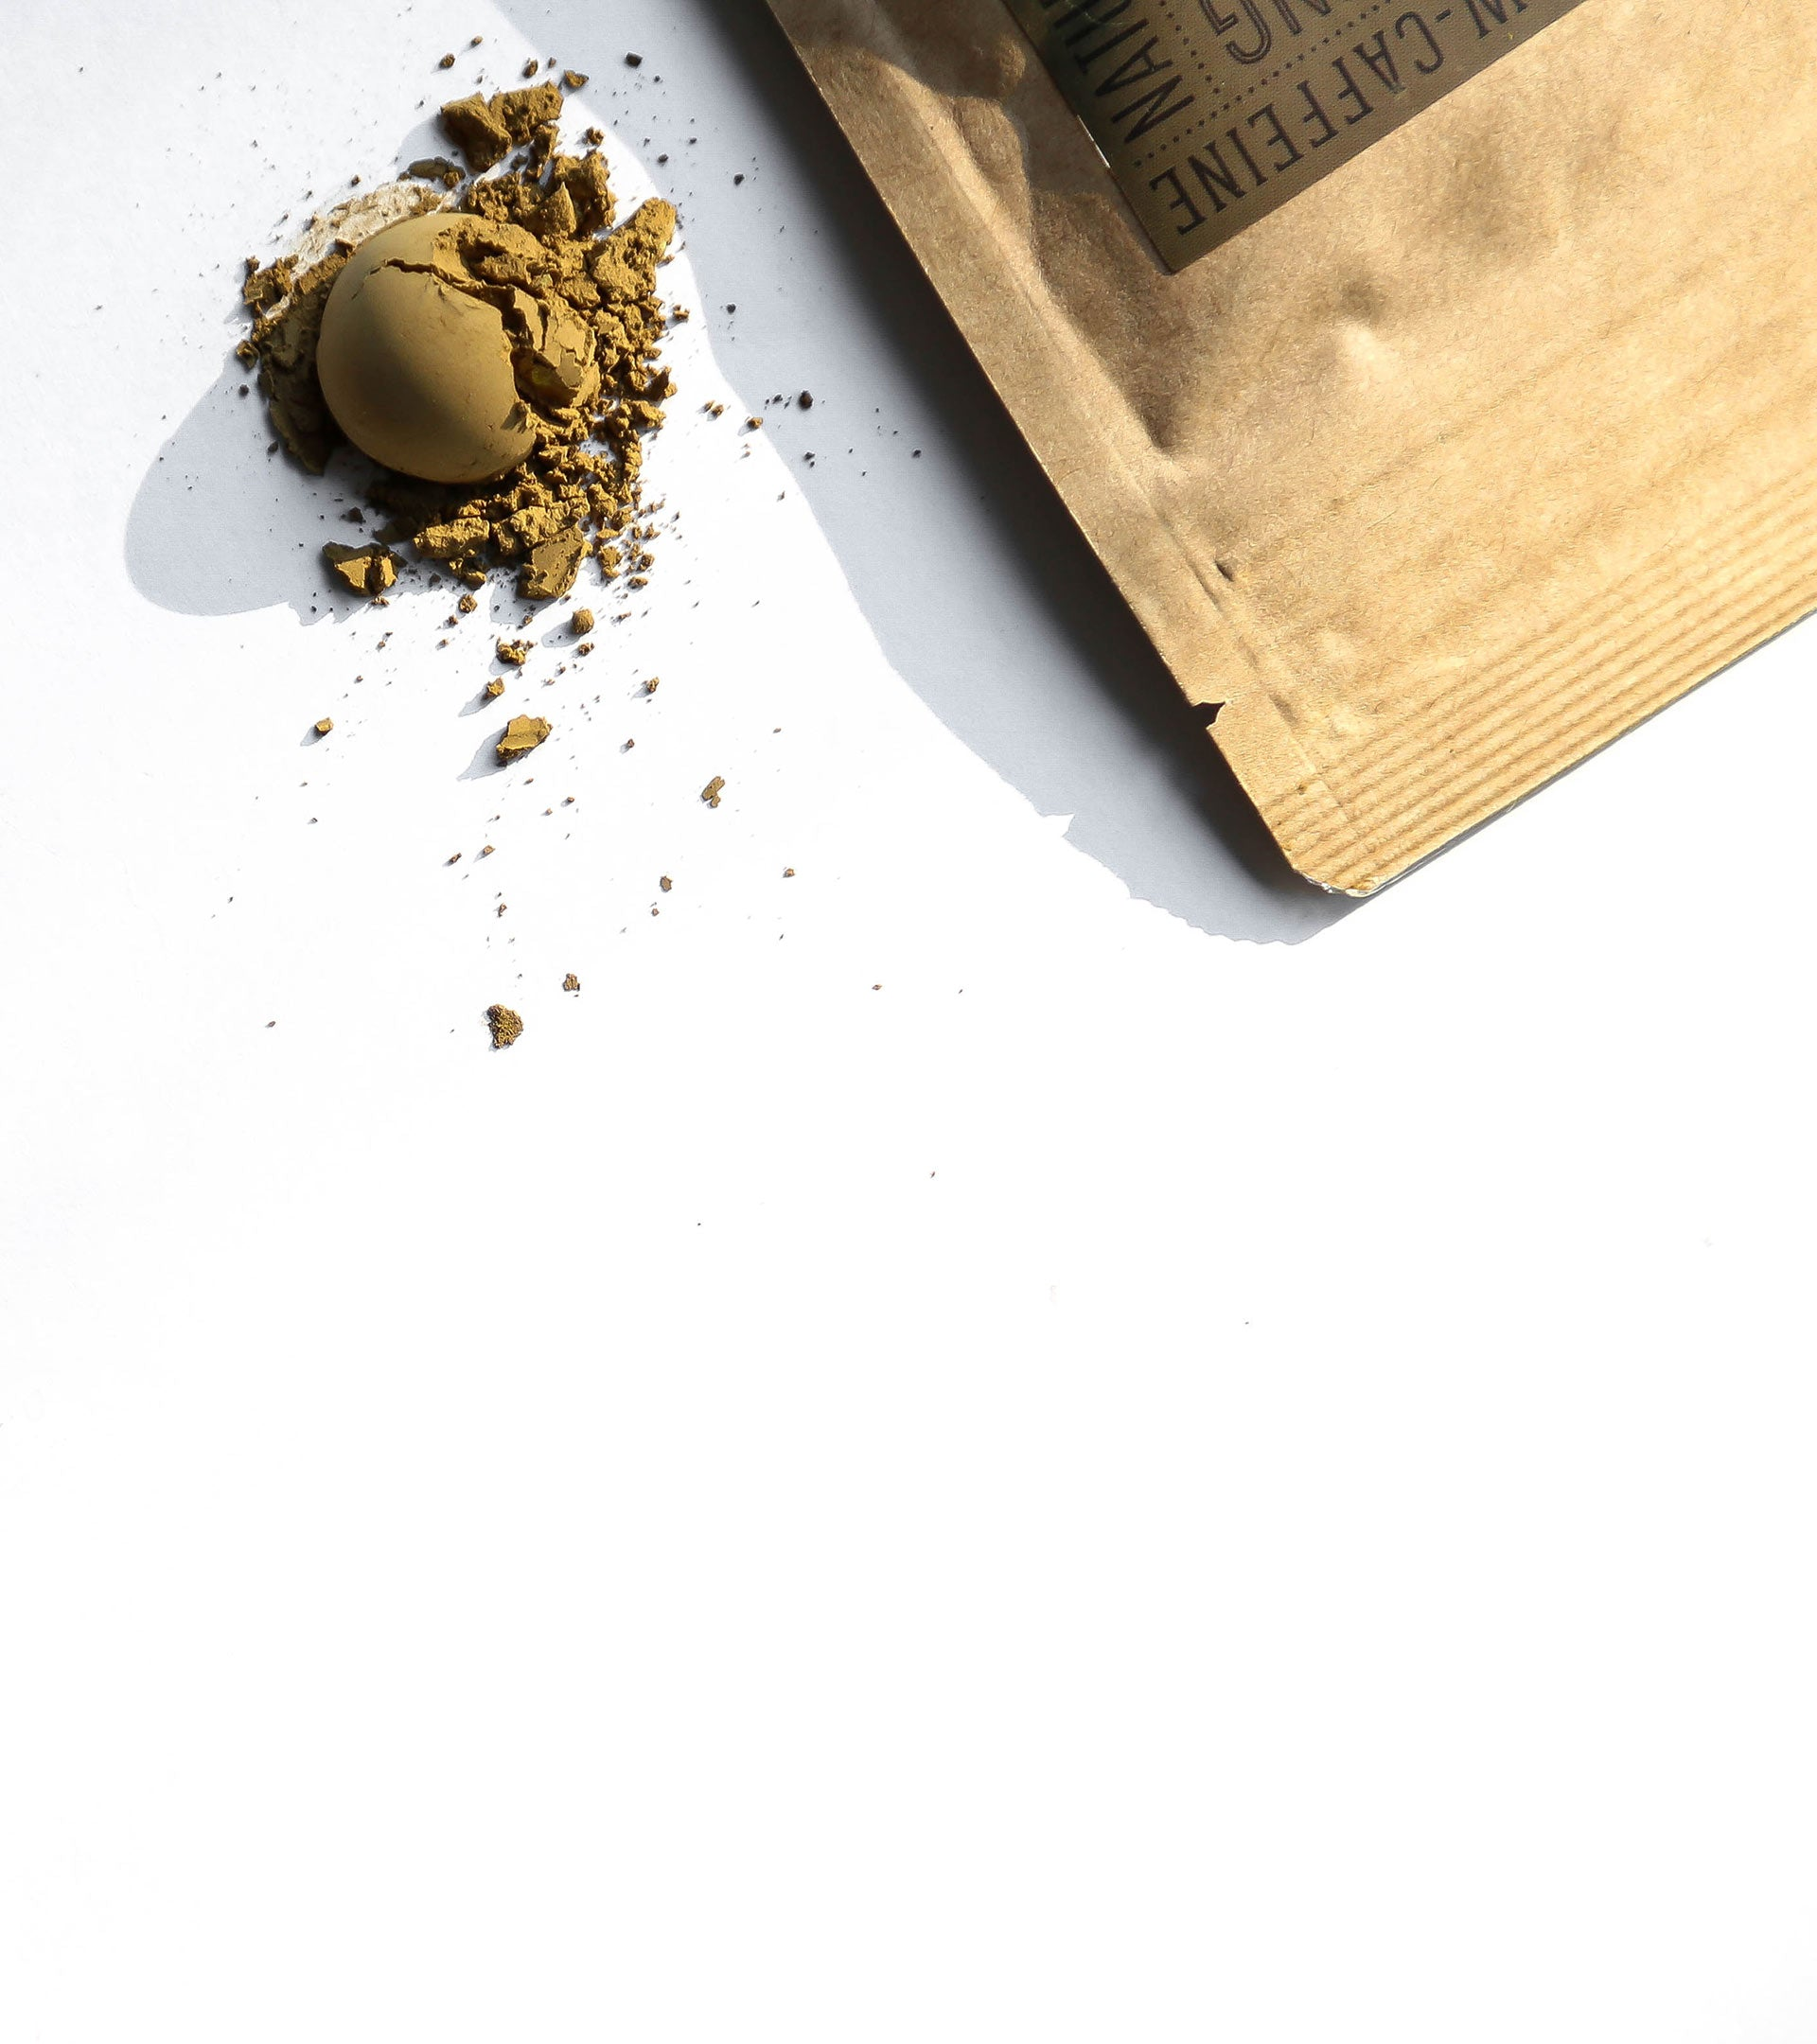 What is Hojicha Powder?